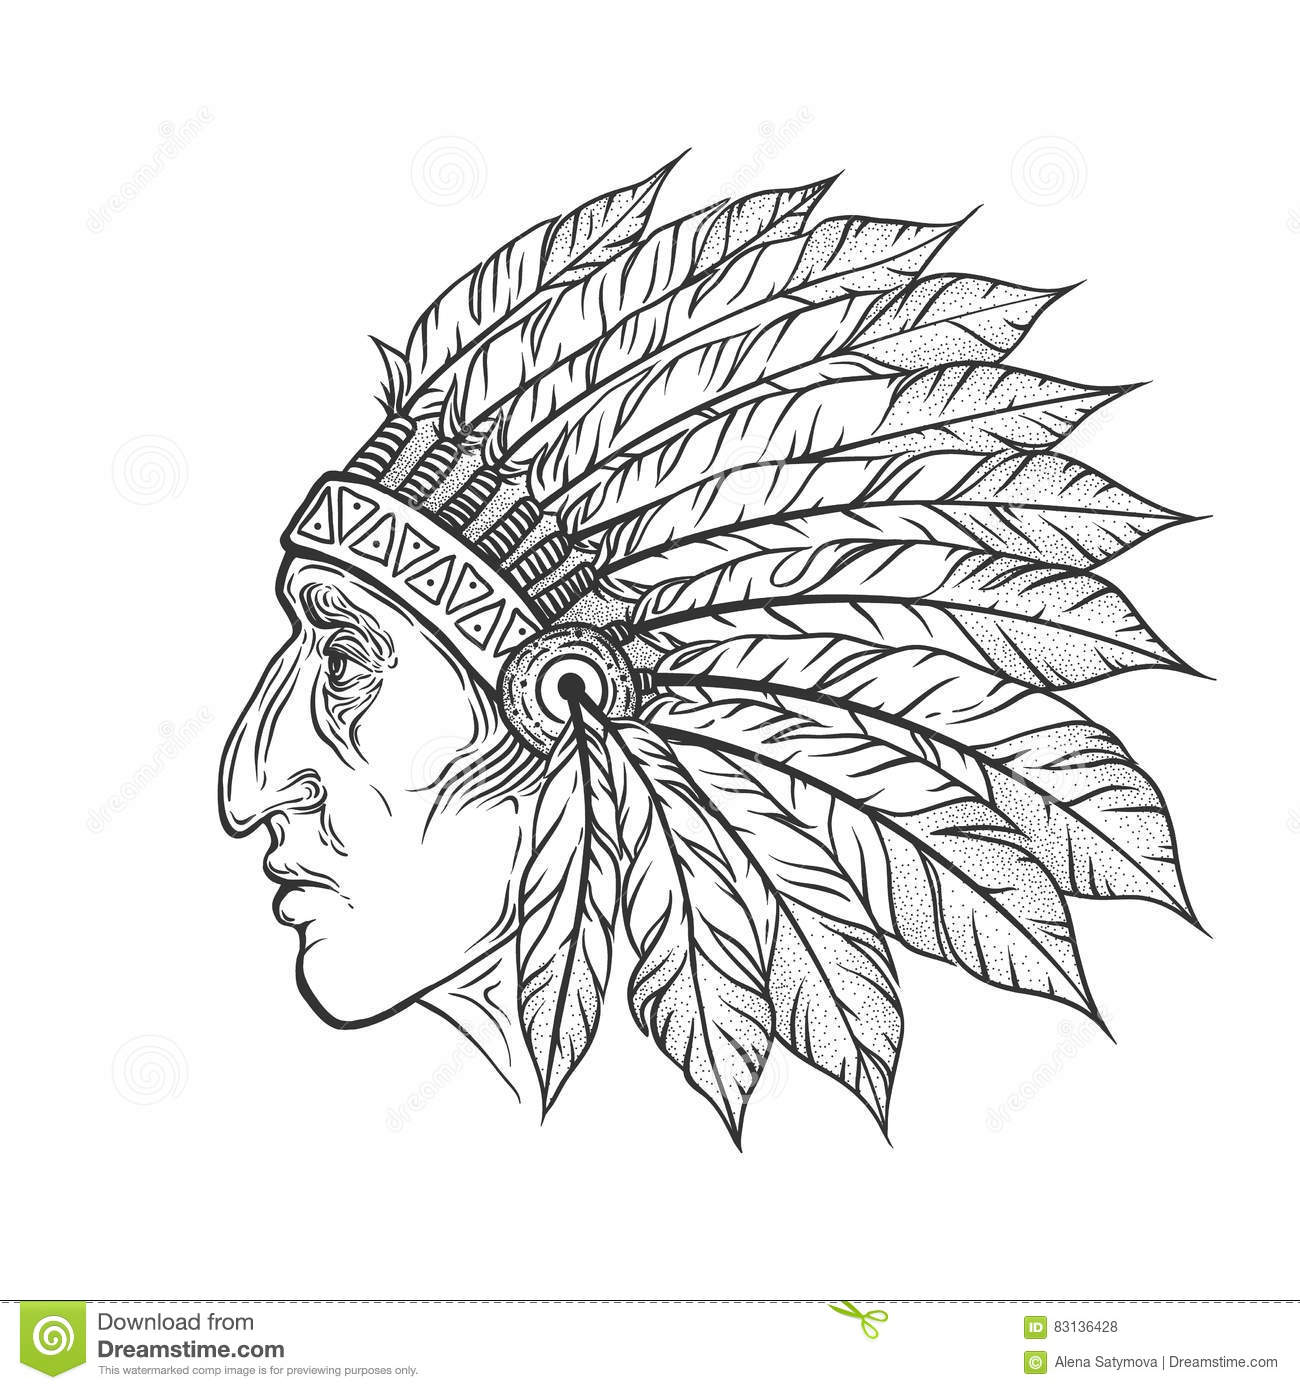 Sketch Of Tattoo Art, Native American Indian Royalty-Free